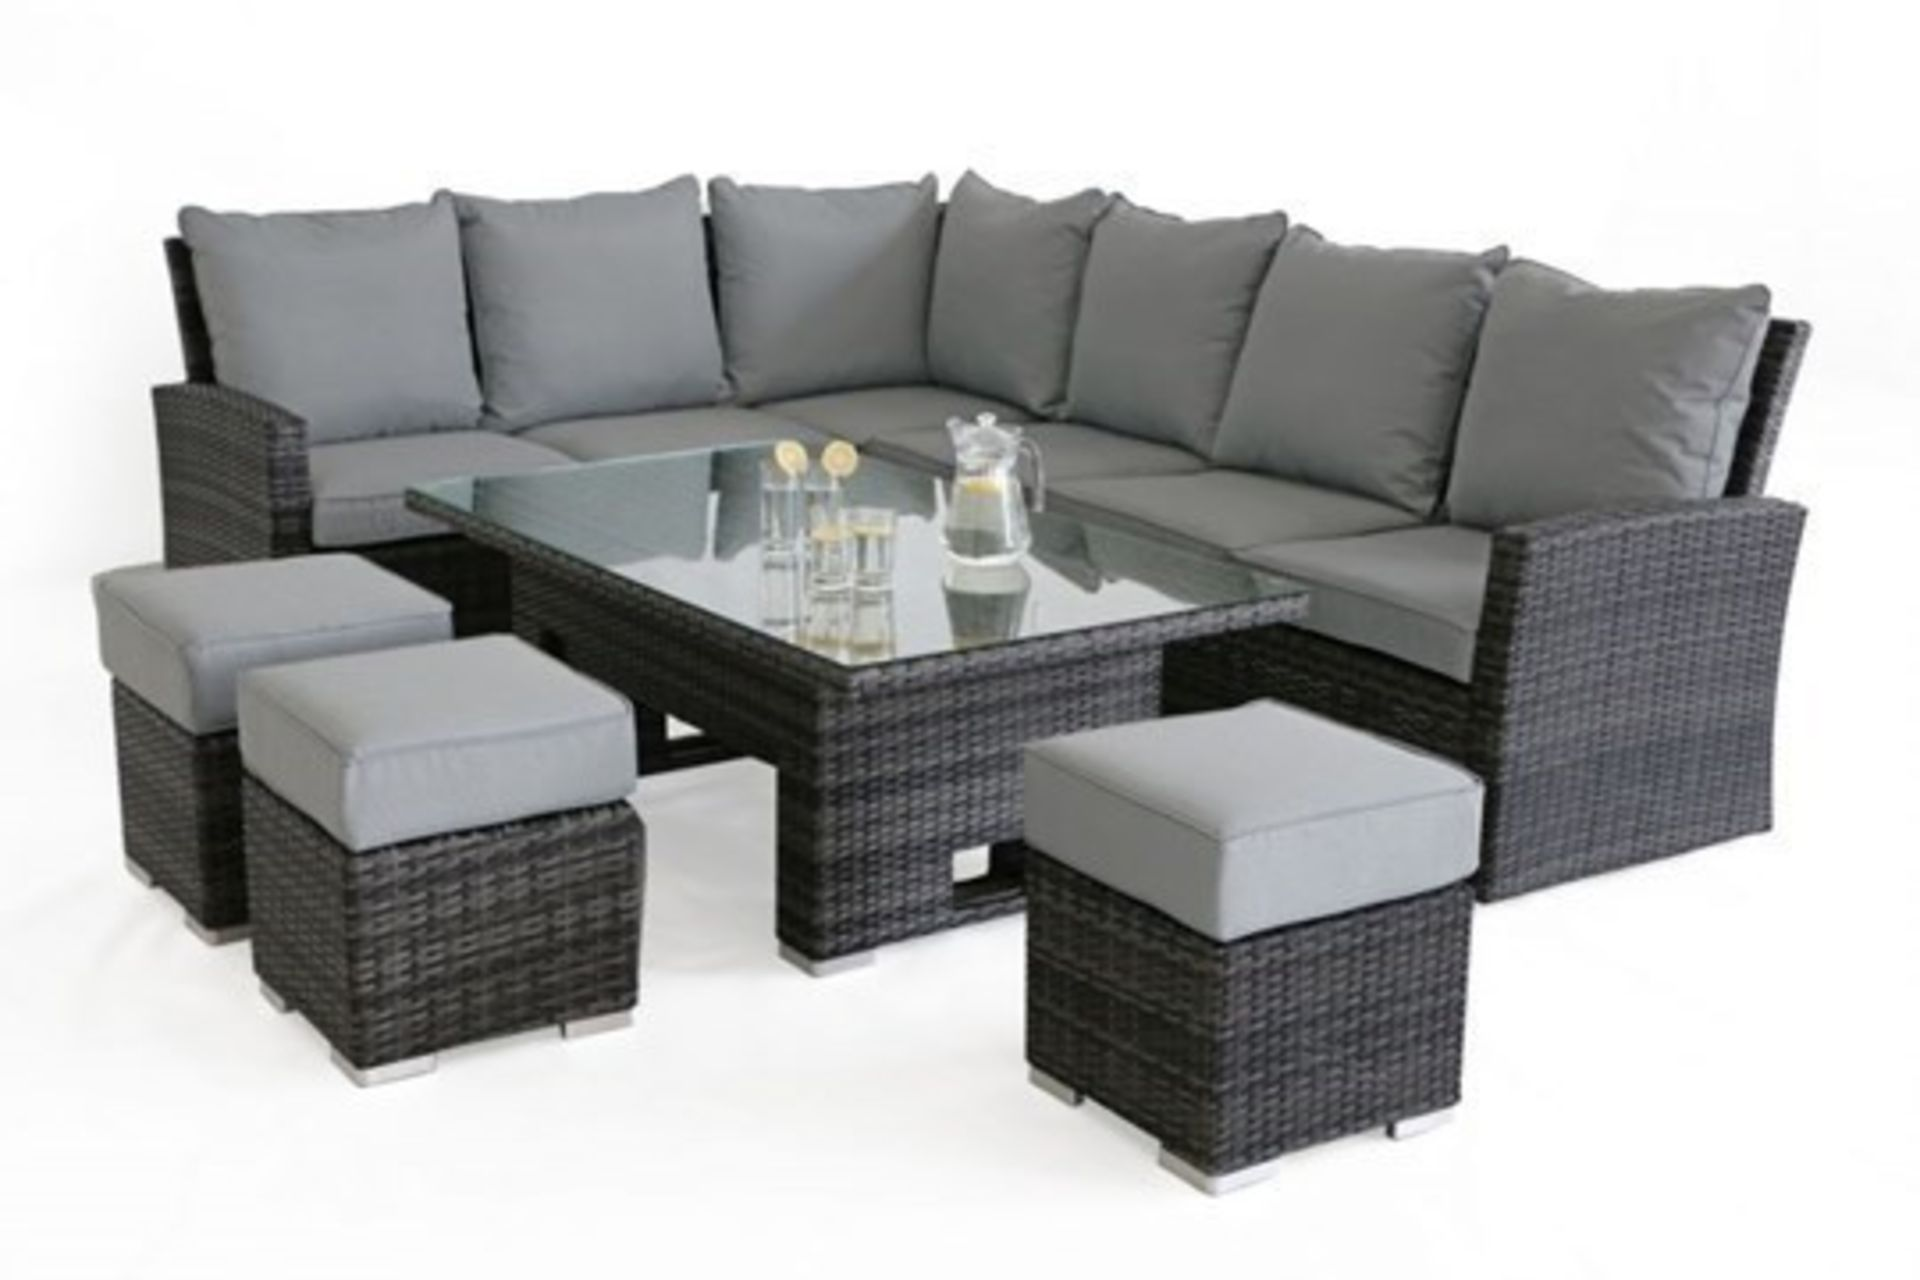 Rattan Kingston Corner Outdoor Dining Set With Rising Table (Grey) *BRAND NEW* - Image 3 of 3